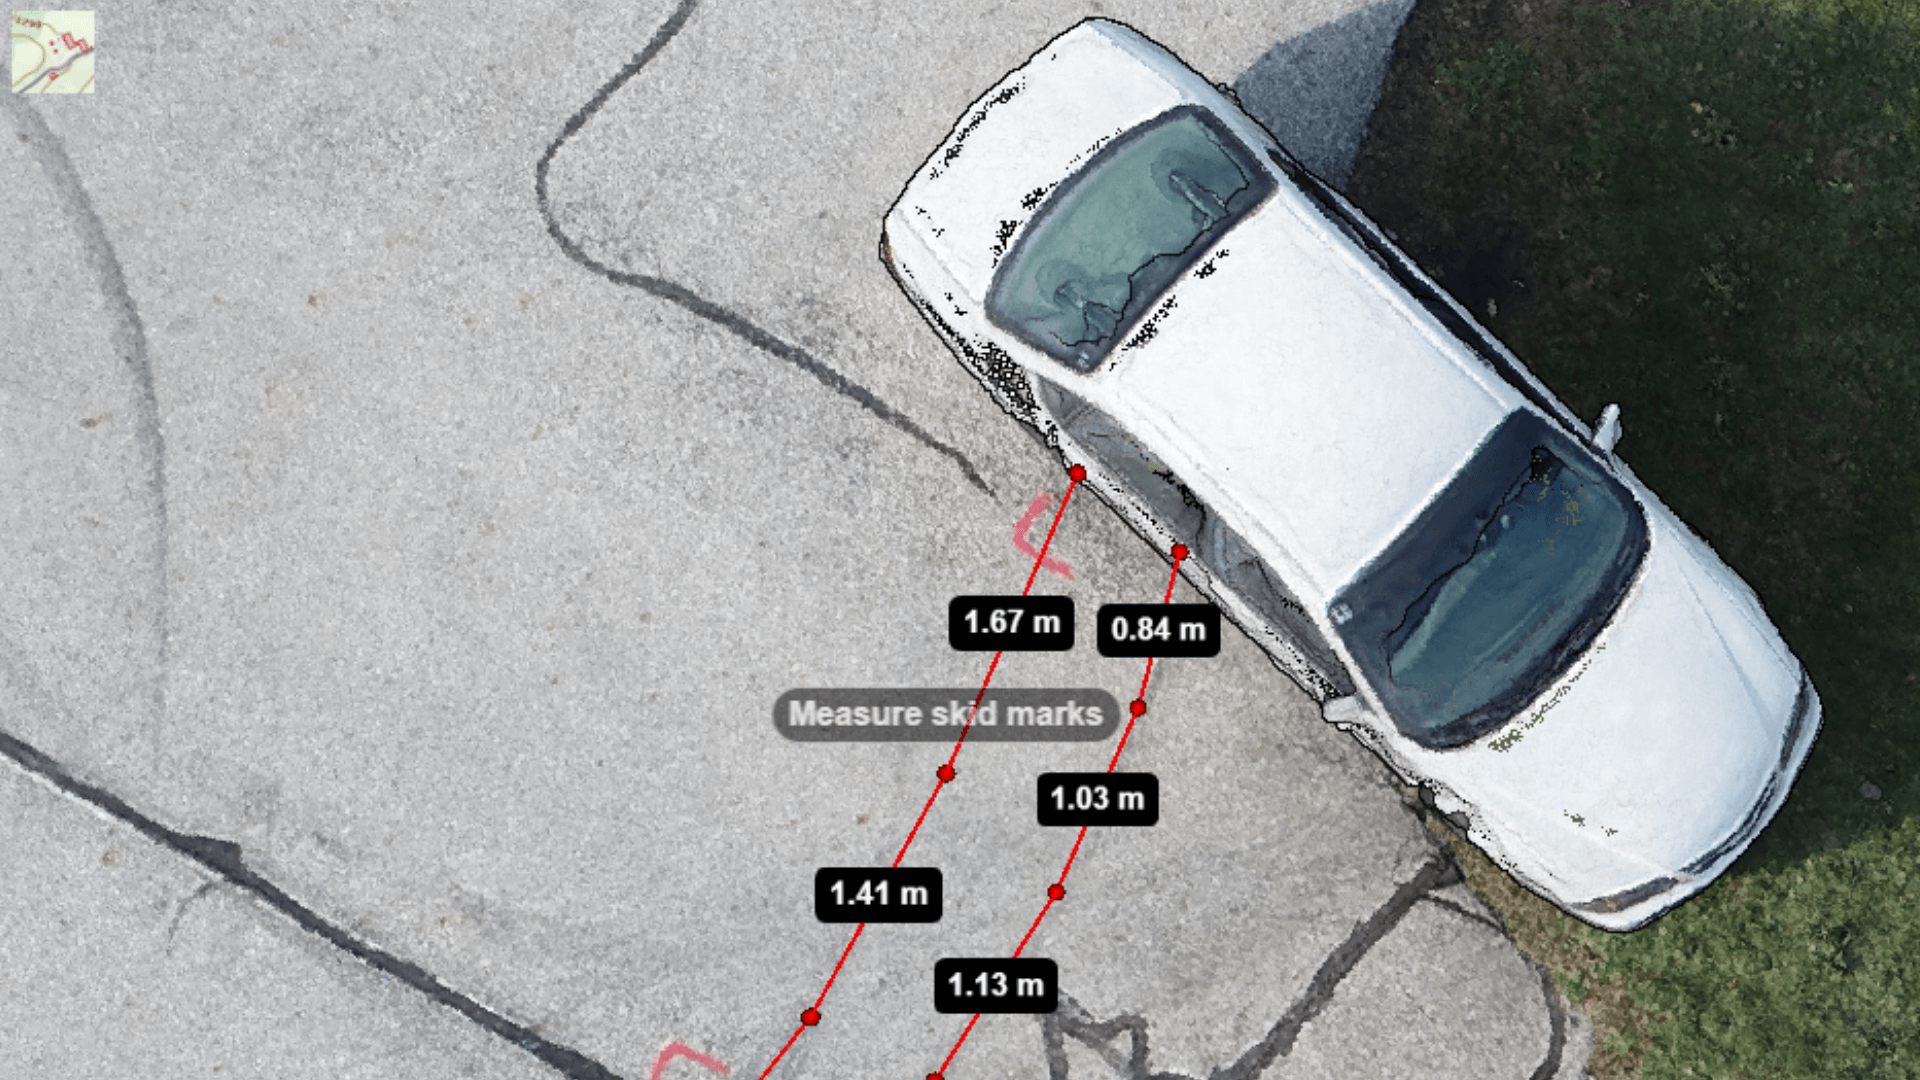 Drone data can be used to measure skid marks after an RTC.